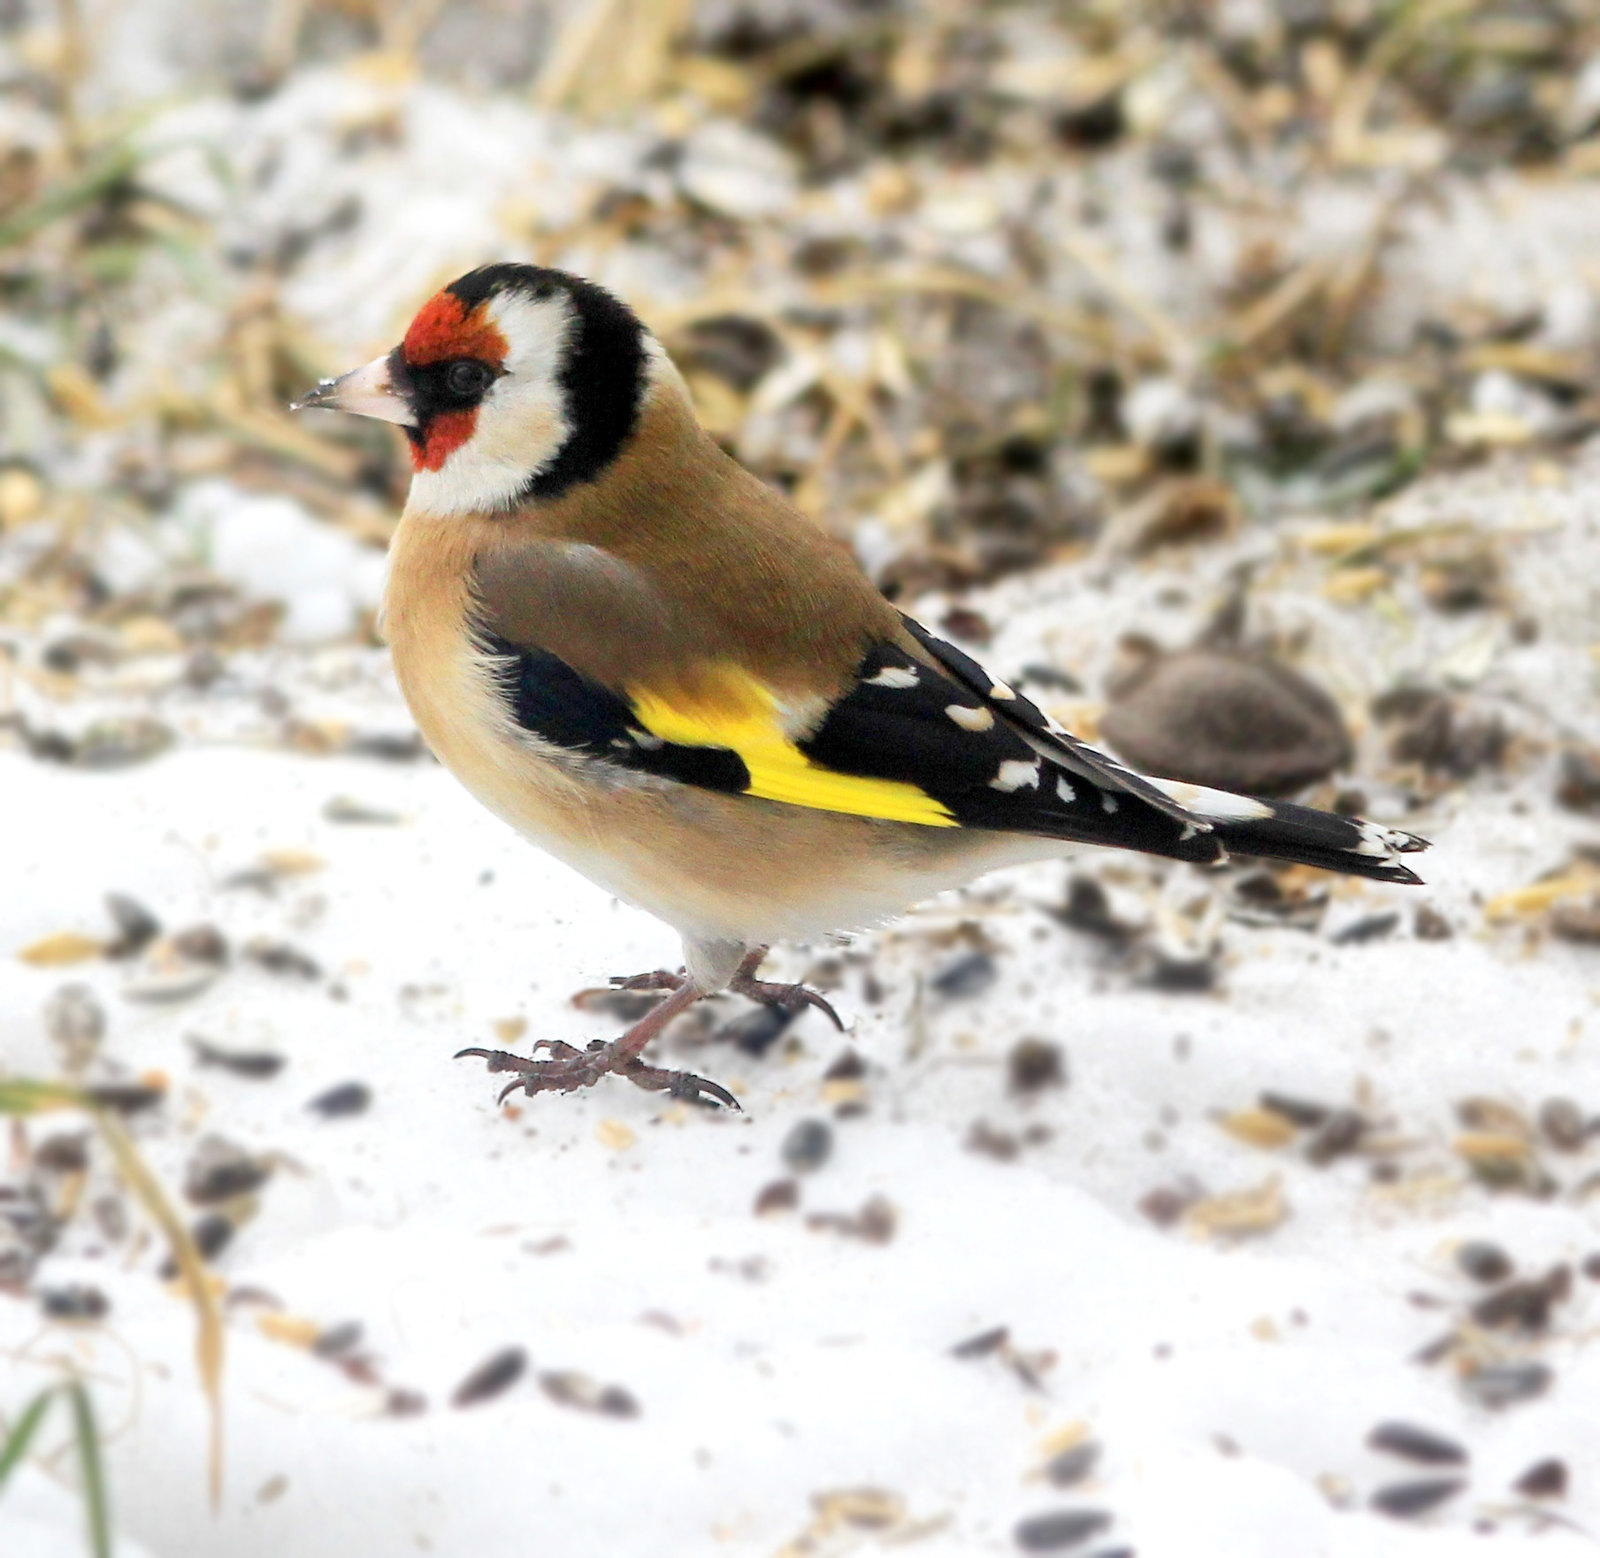 Goldfinch. Credit Karelj